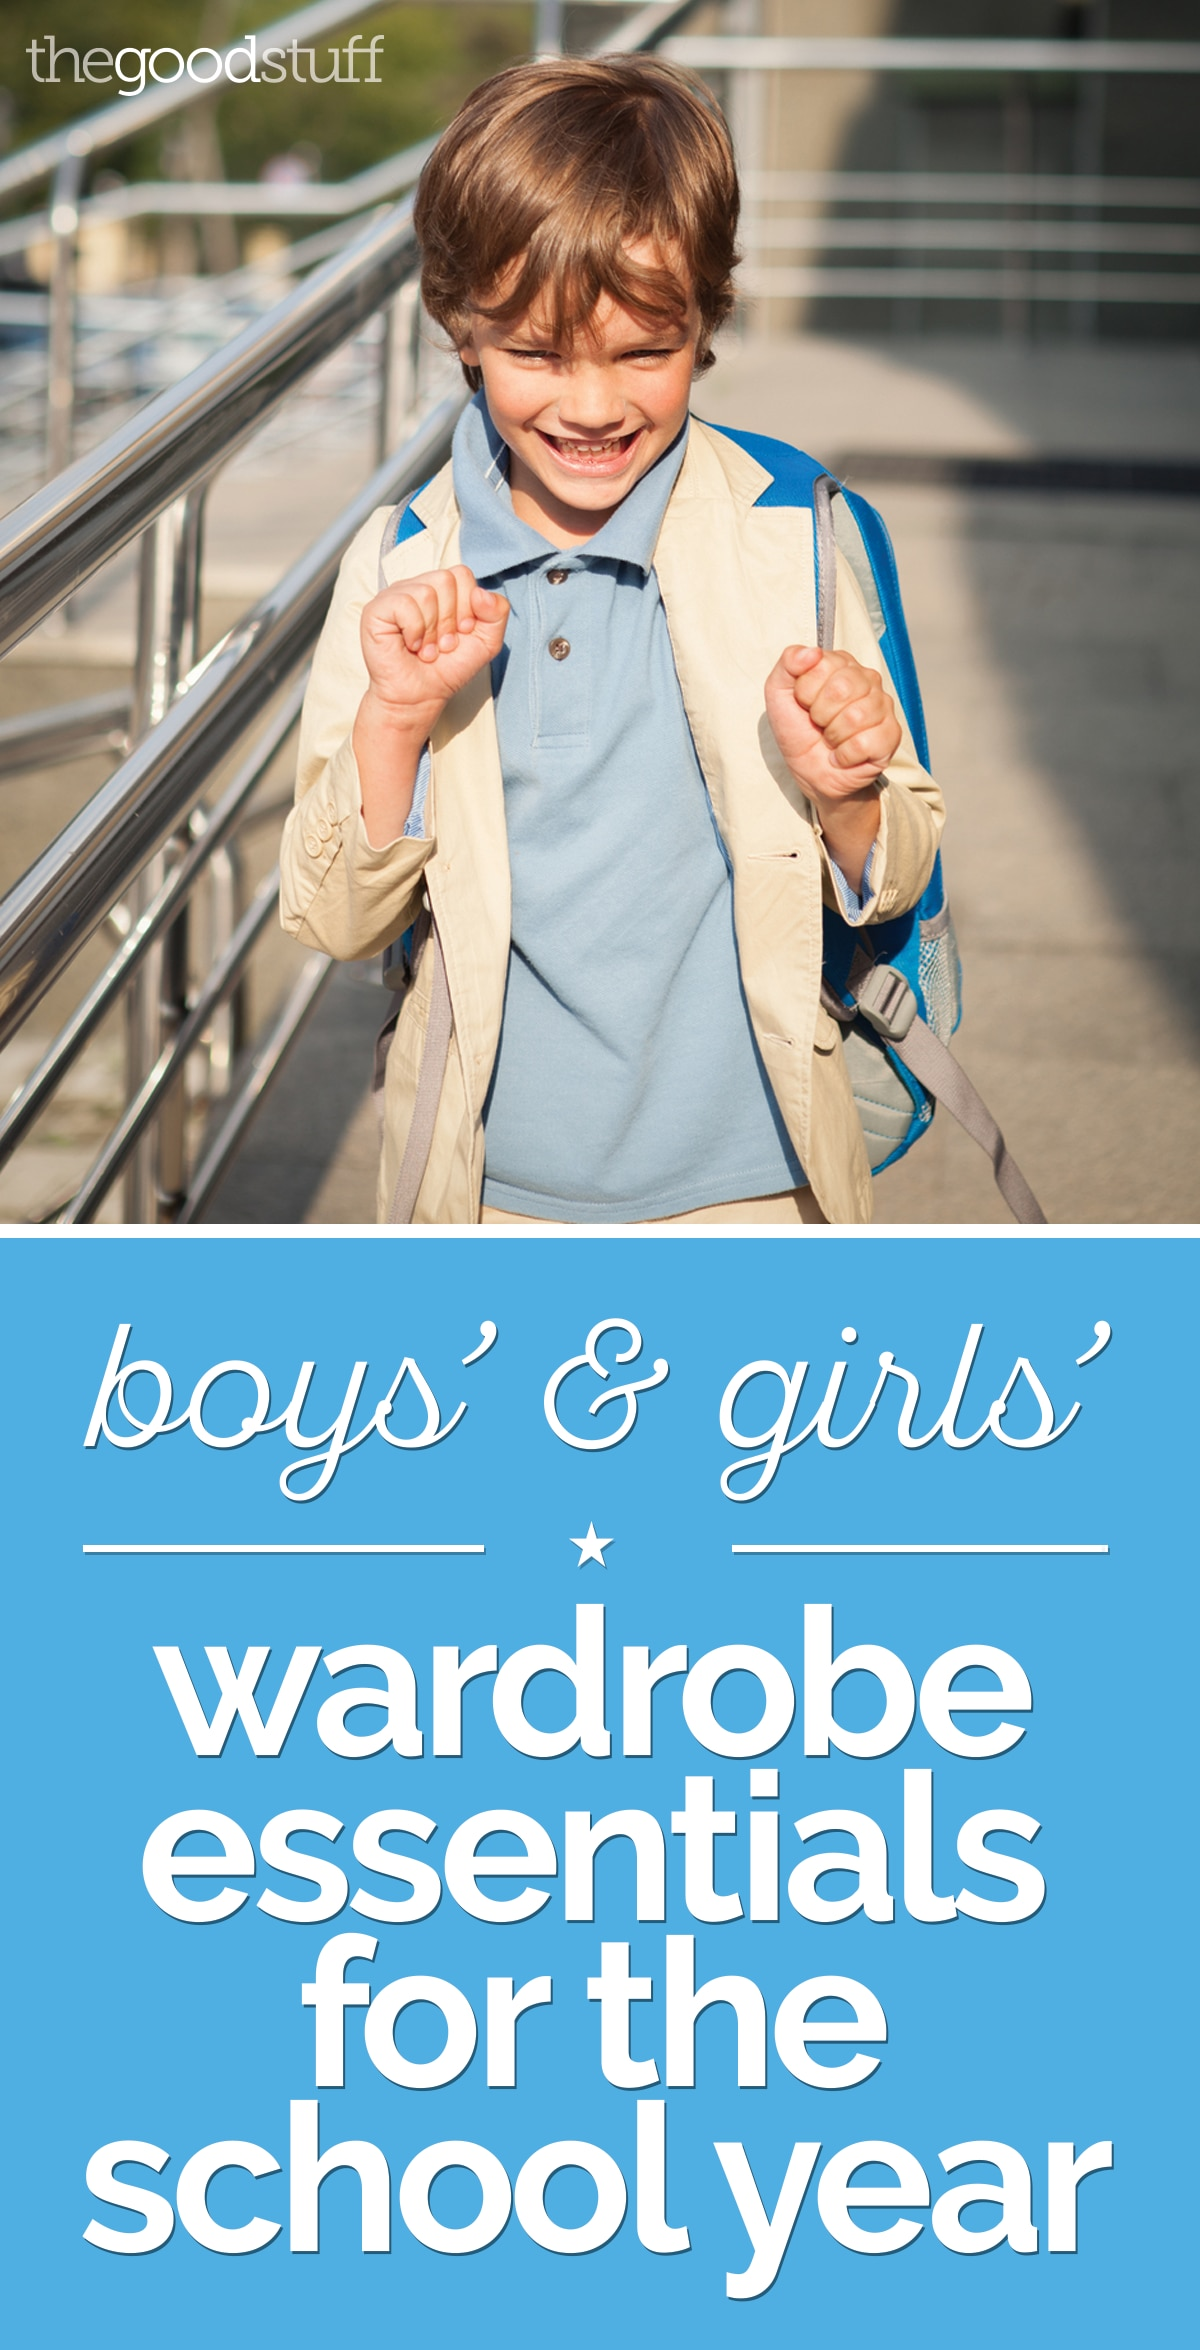 10 Basic Wardrobe Essentials for the School Year | thegoodstuff